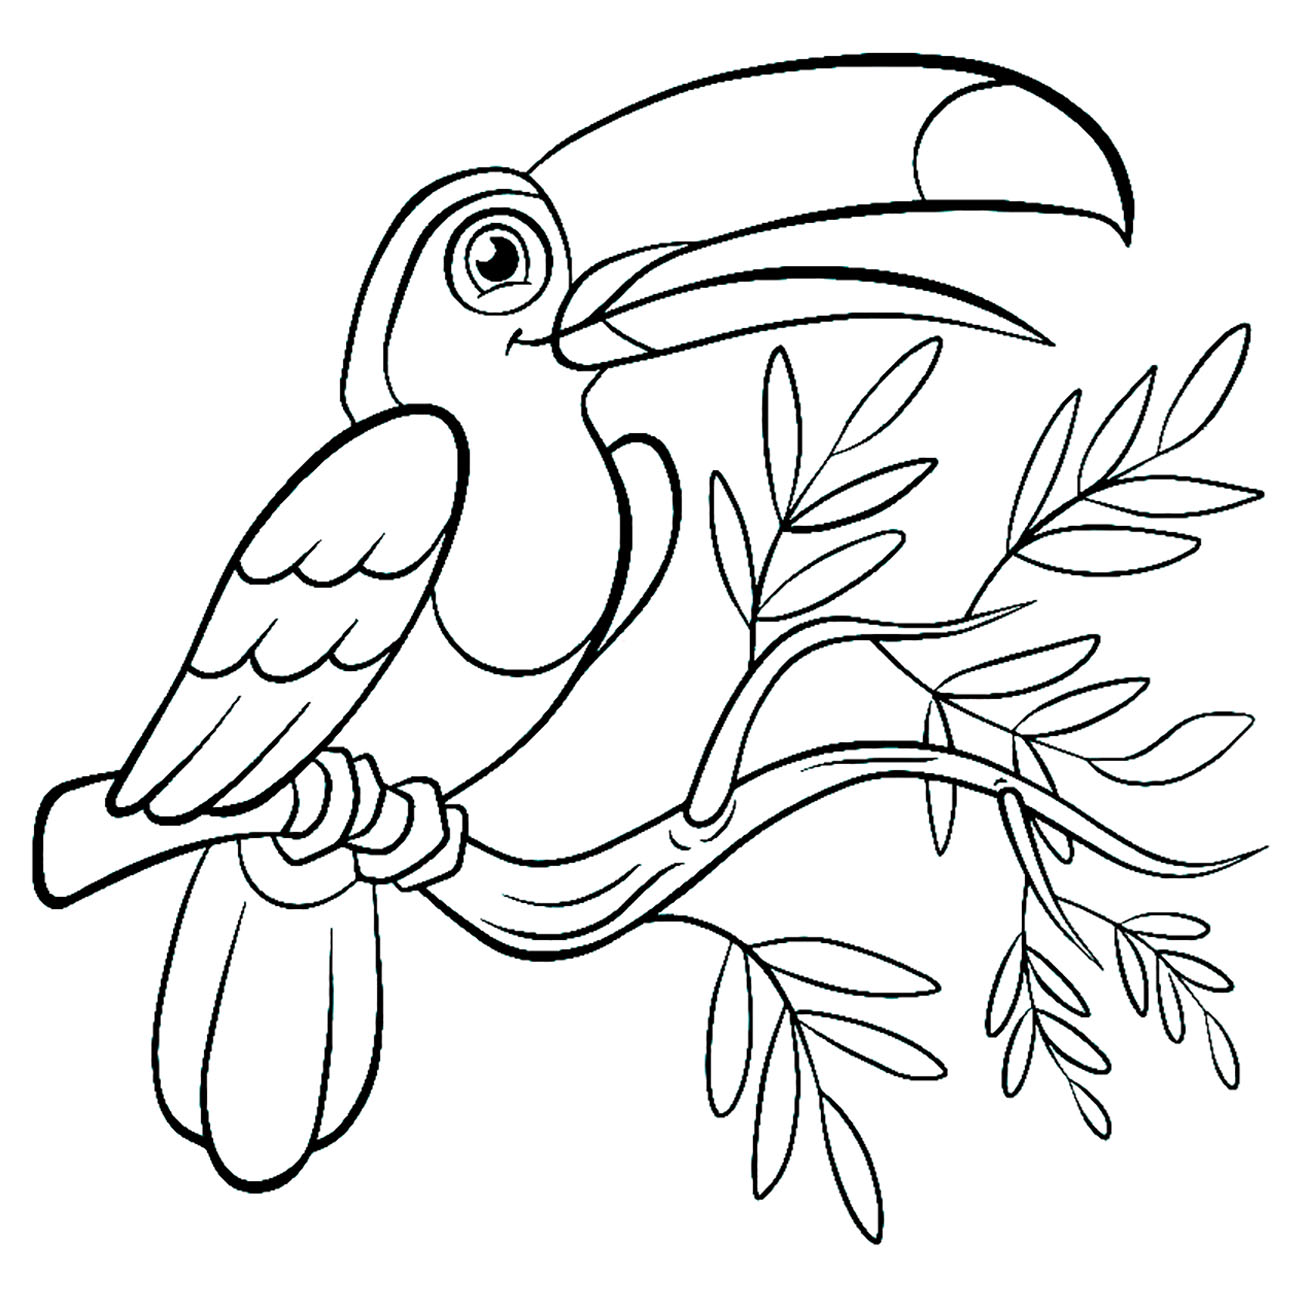 - Birds To Color For Children - Birds Kids Coloring Pages